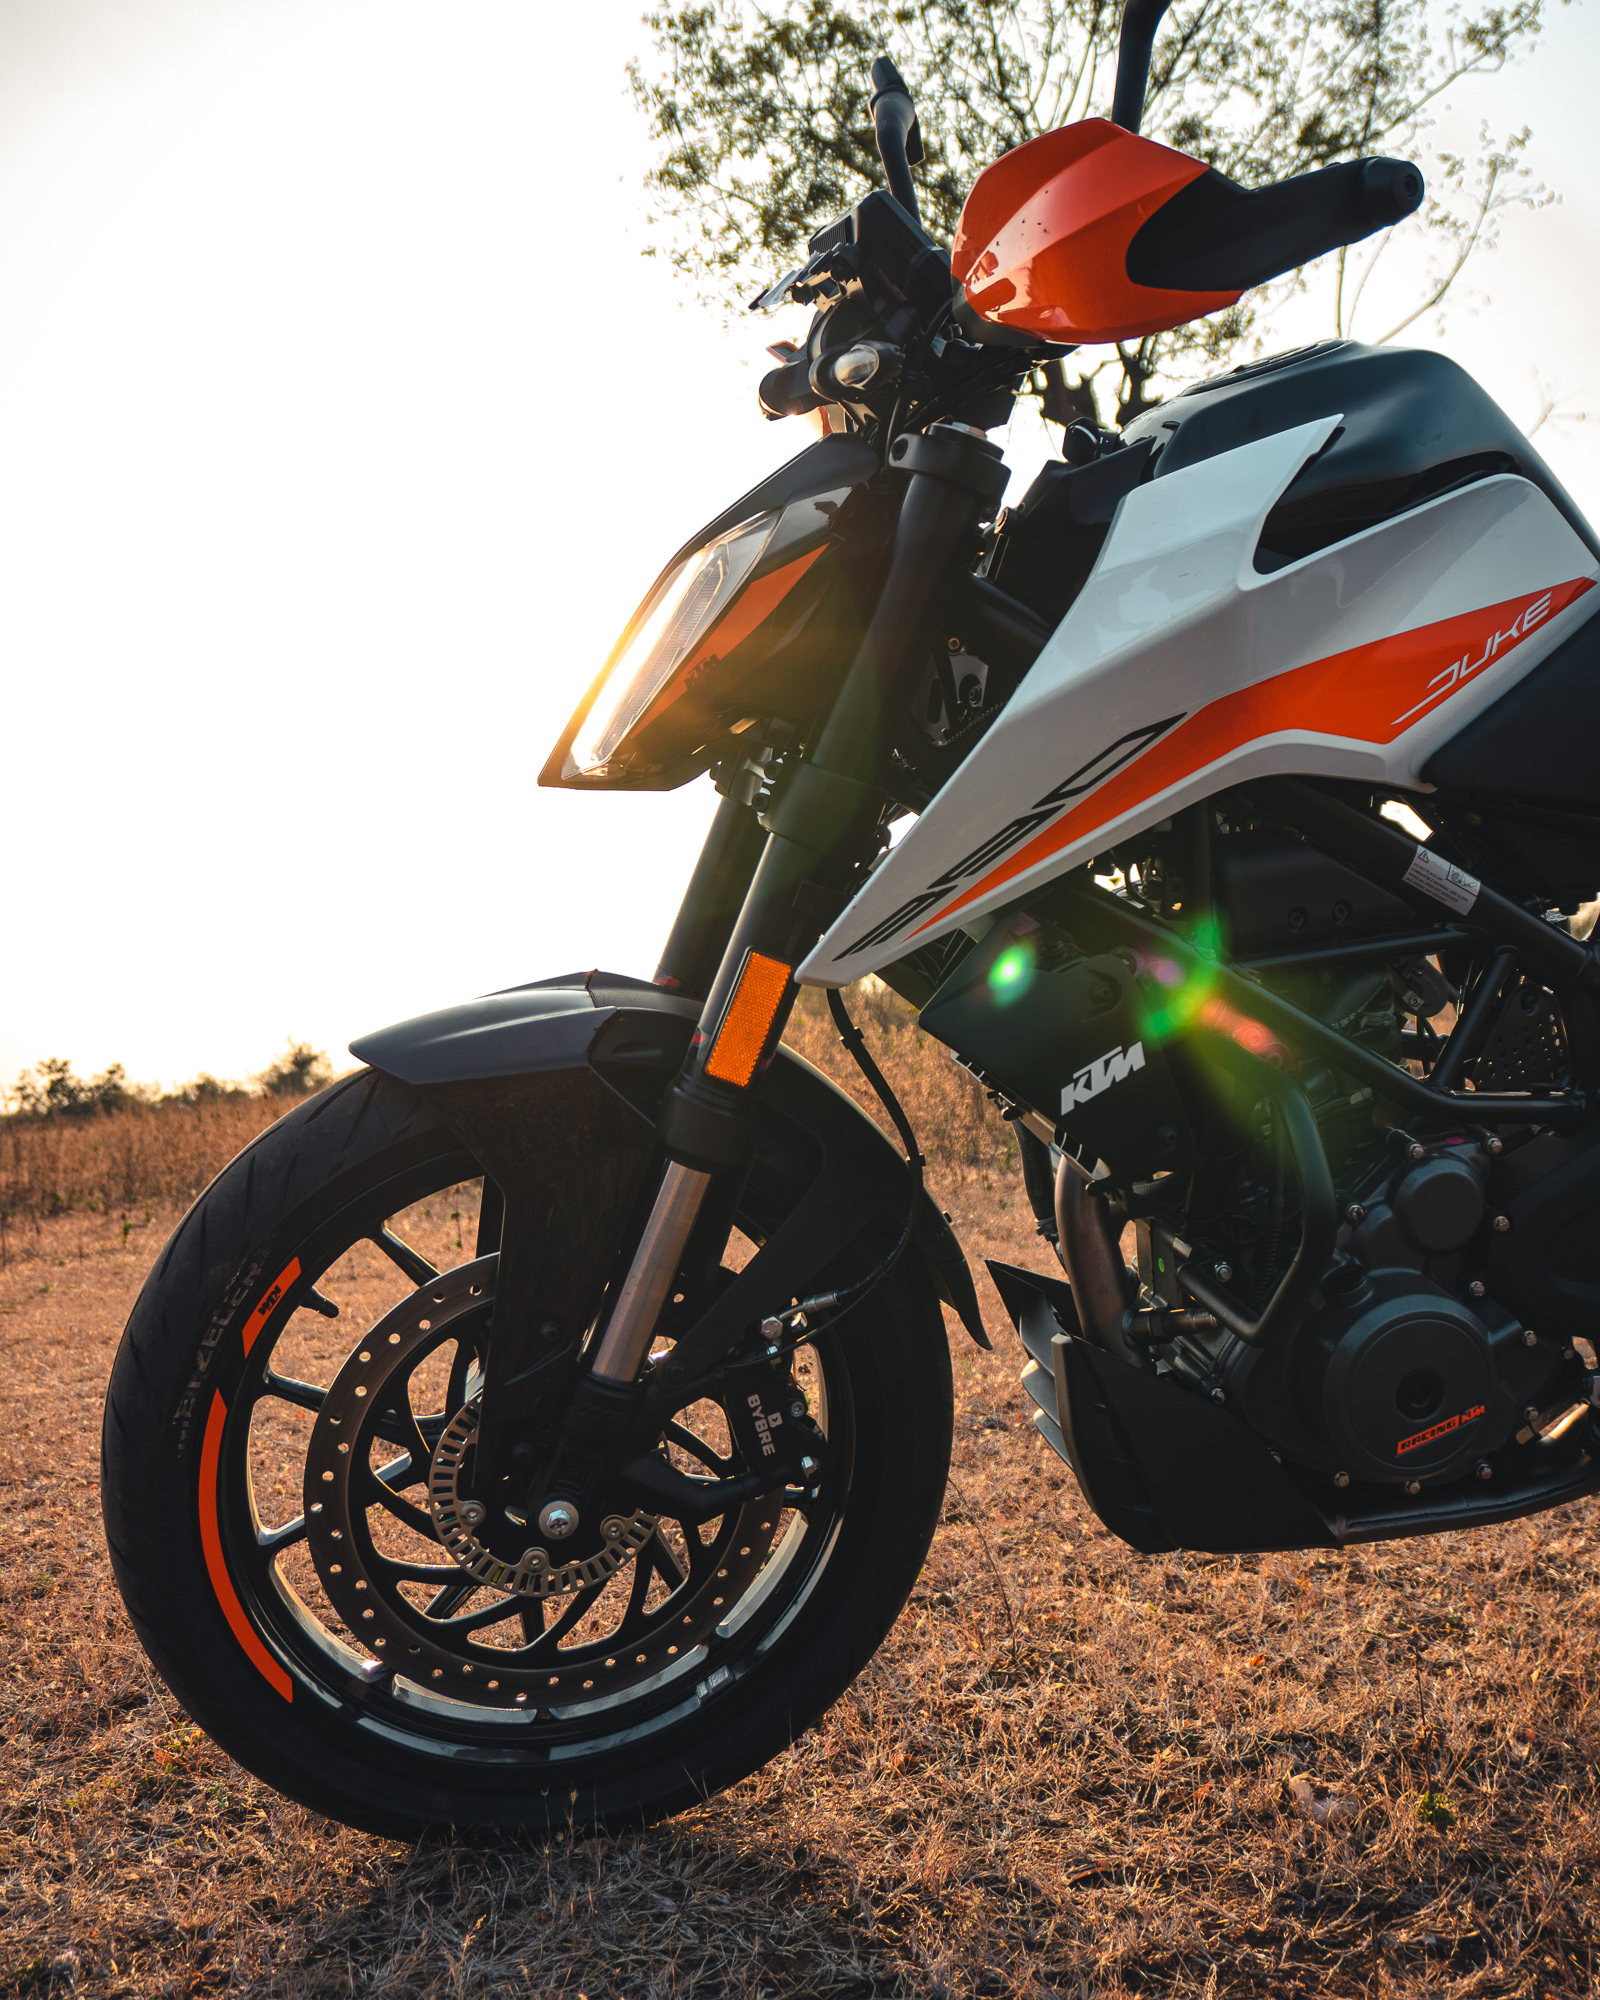 alloy cast versus spoked wheels on motorcycles 2021